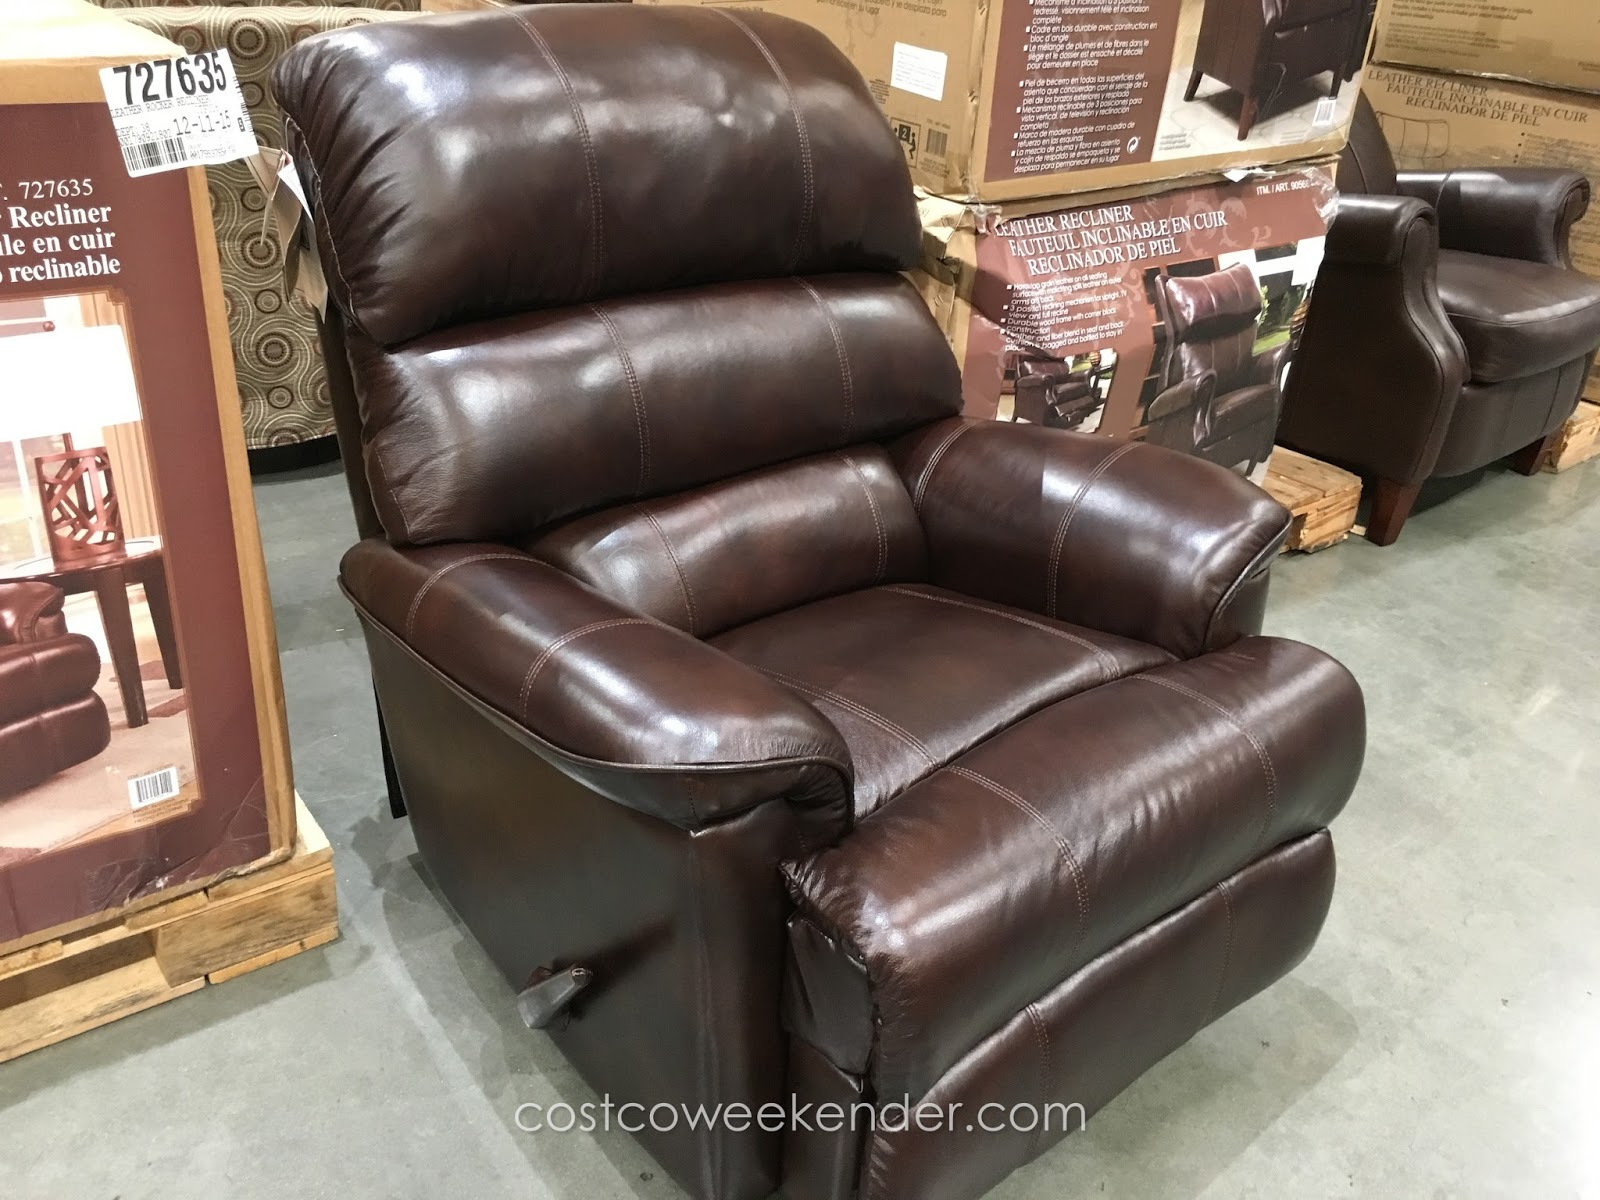 costco leather chairs best chair recliner barcalounger rocker weekender